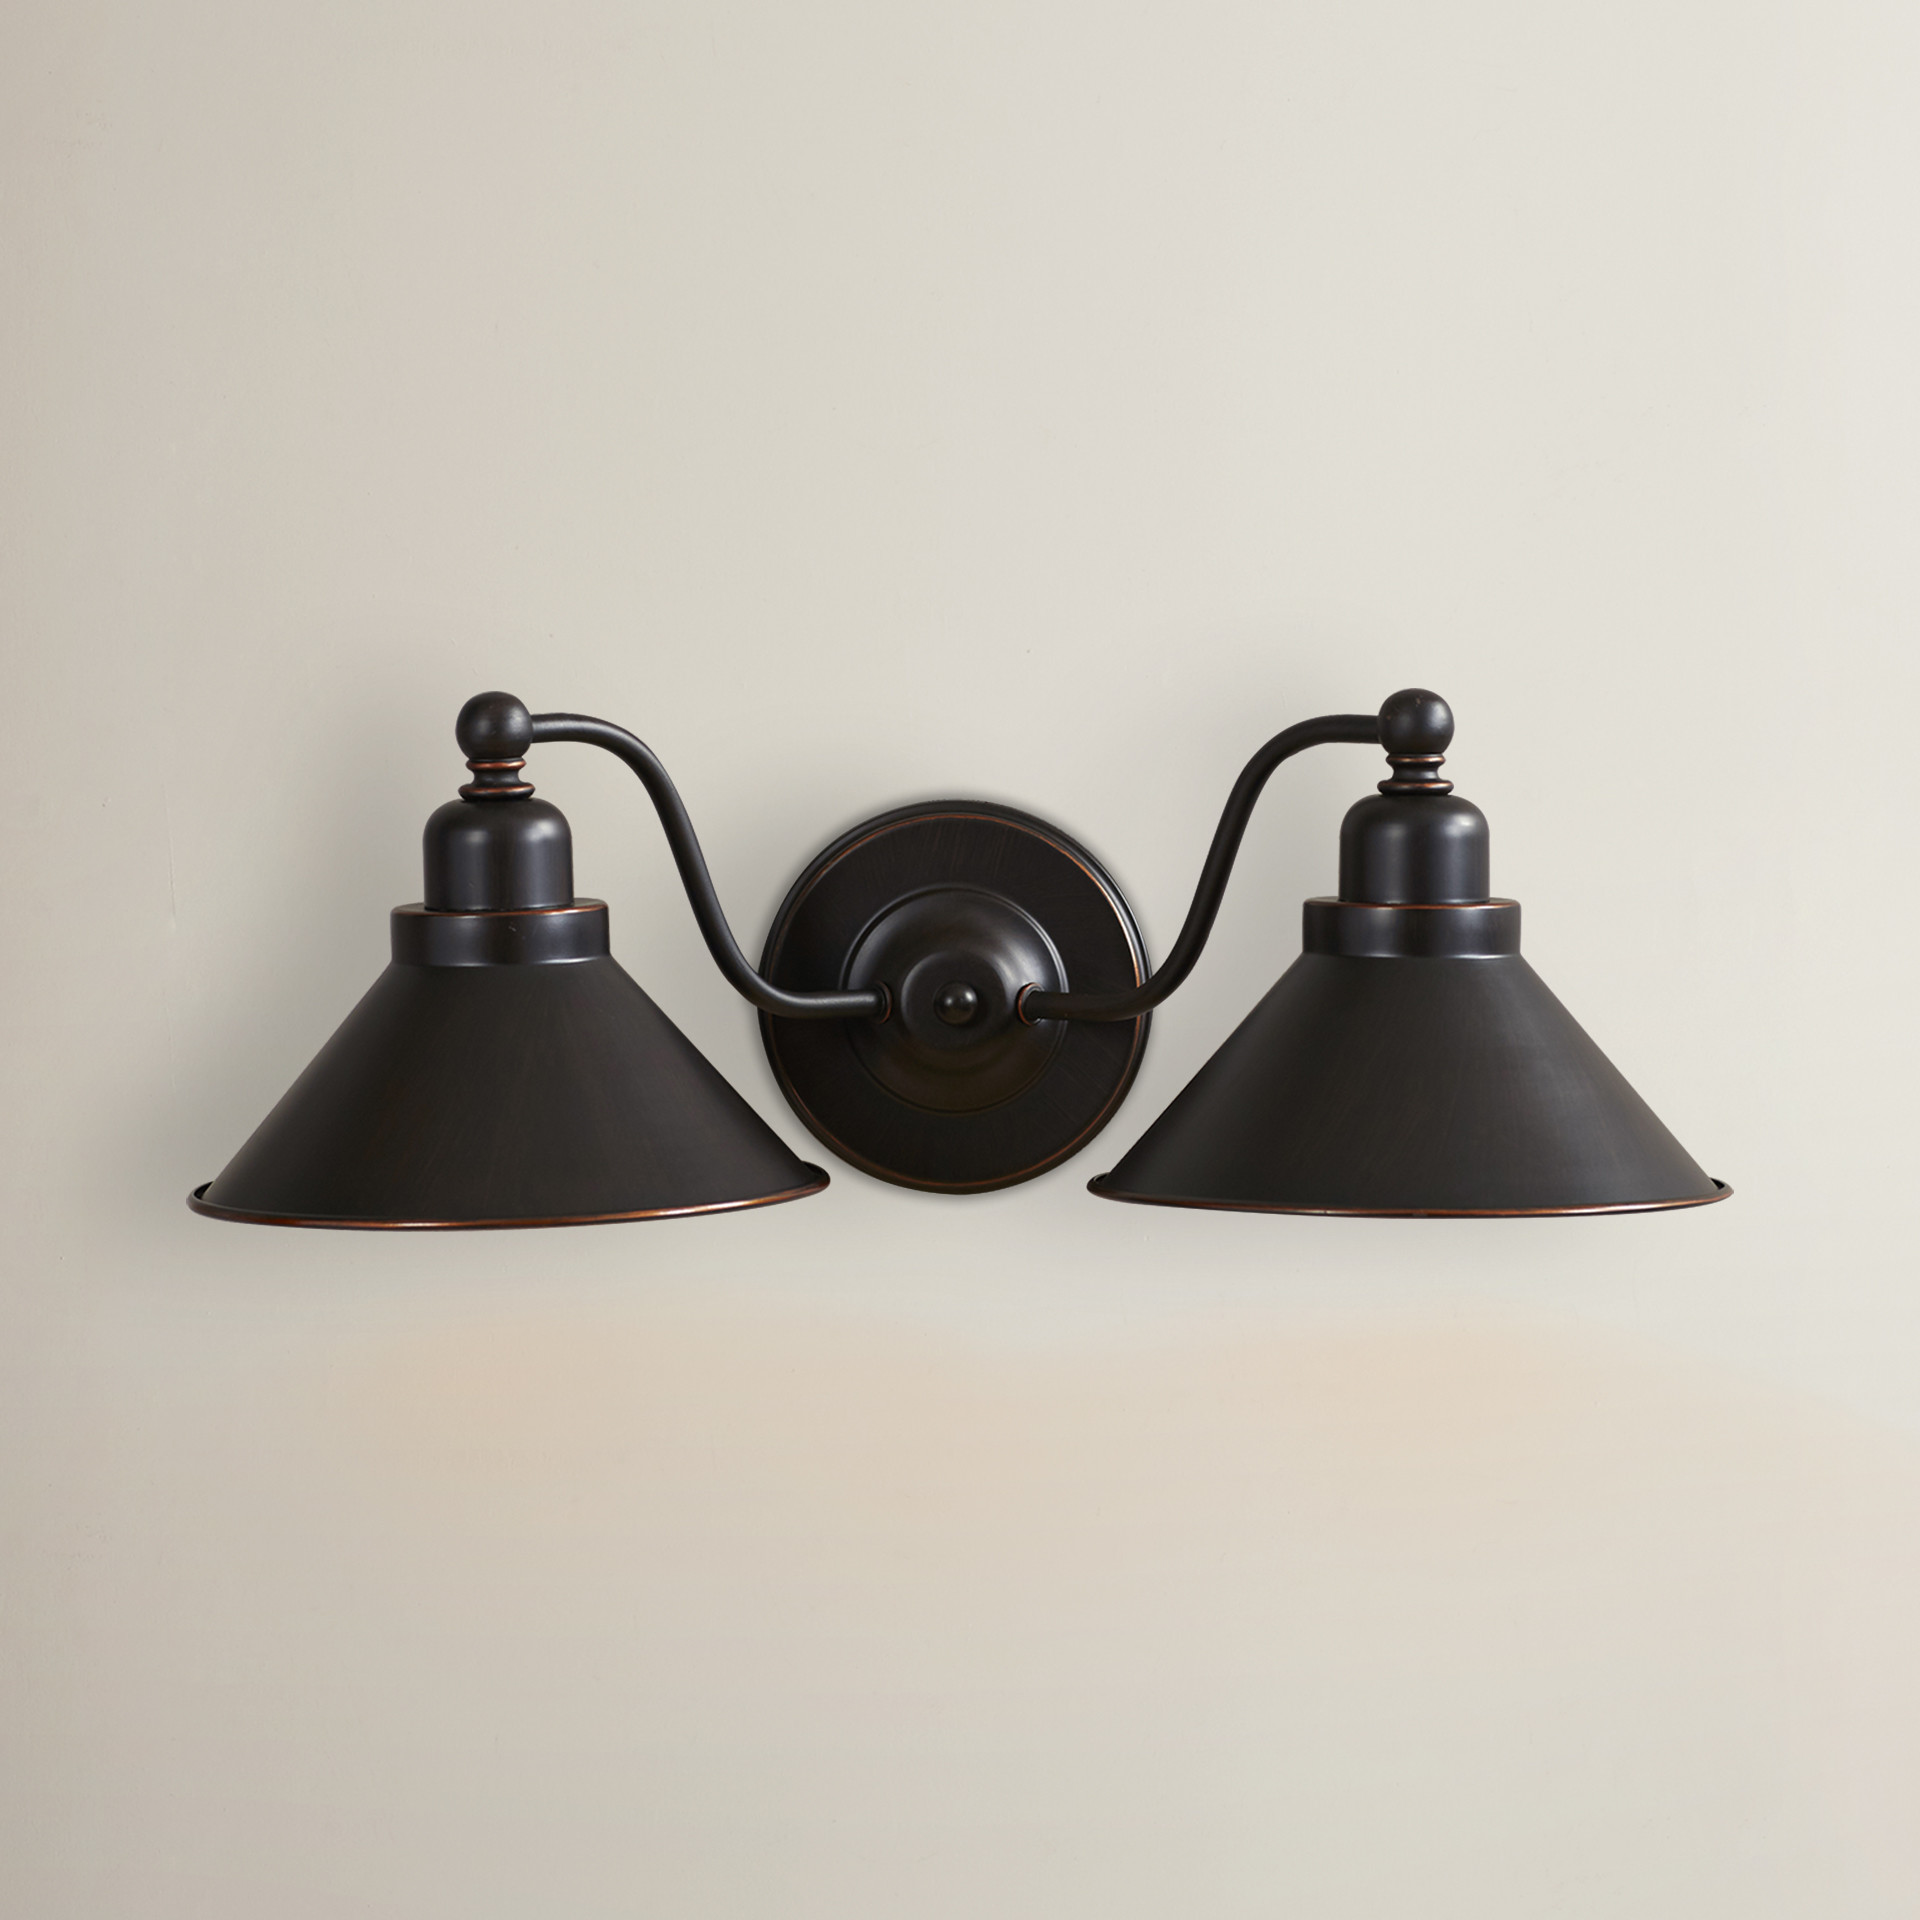 2 light wall sconce bronze come in many types